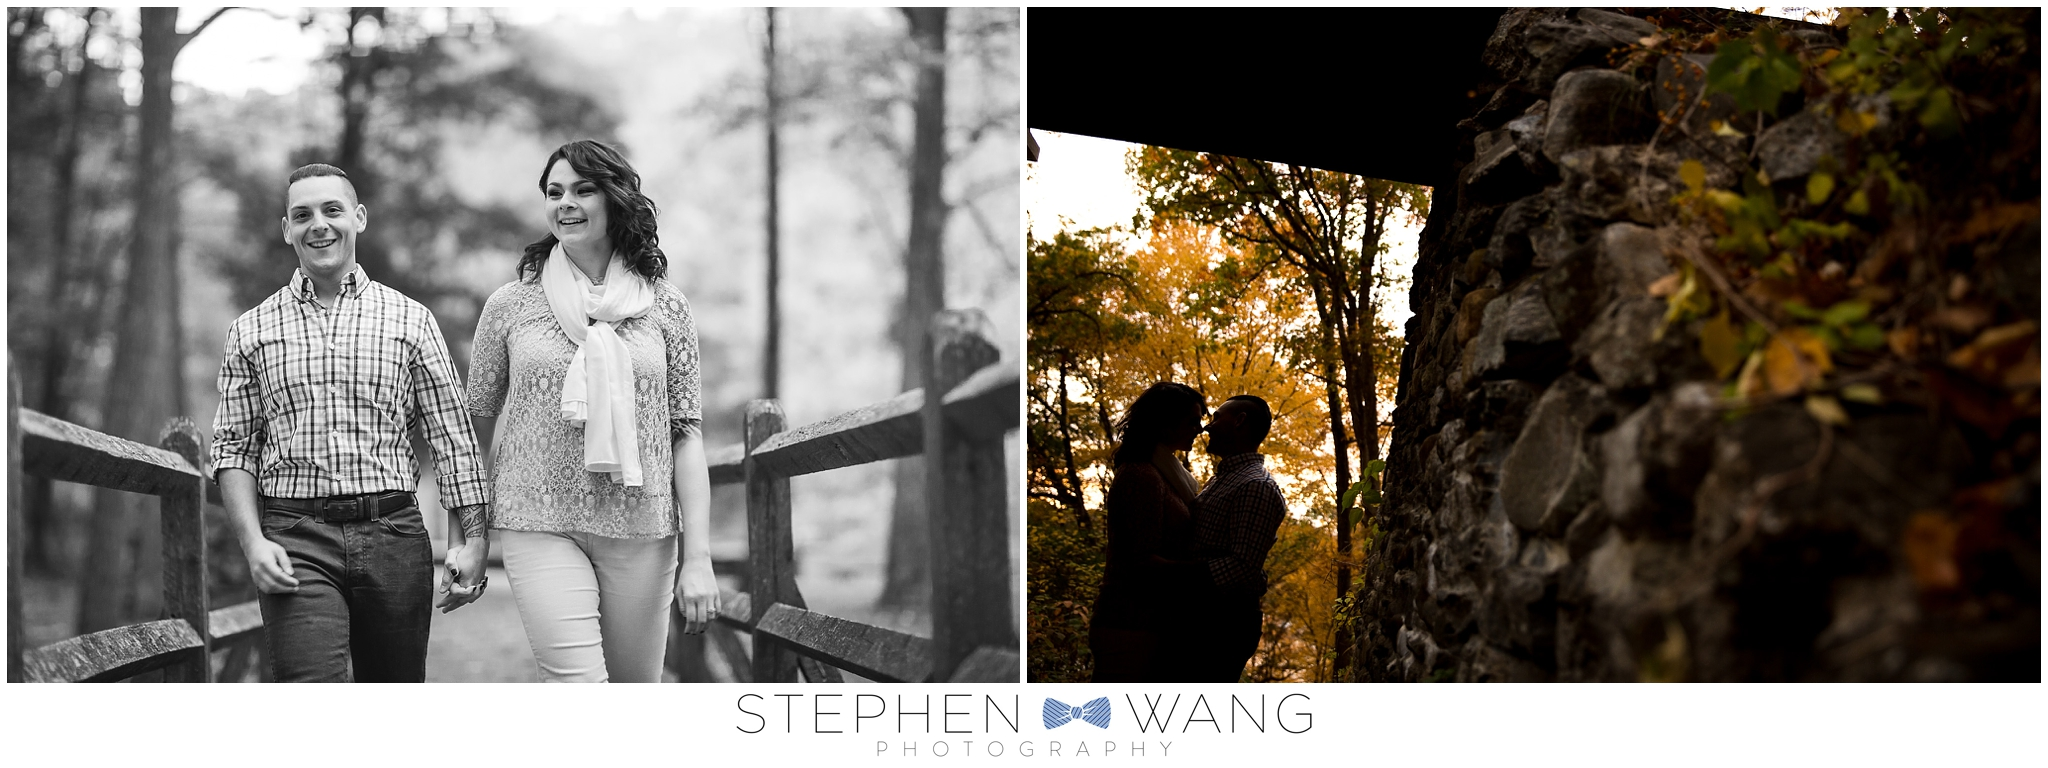 Stephen Wang Photography Connecticut Engagement Session photographer Gilette Castle Park East Haddam Deep River Town Hall Theater Autum Fall Foliage CT New Haven-11-05_0003.jpg